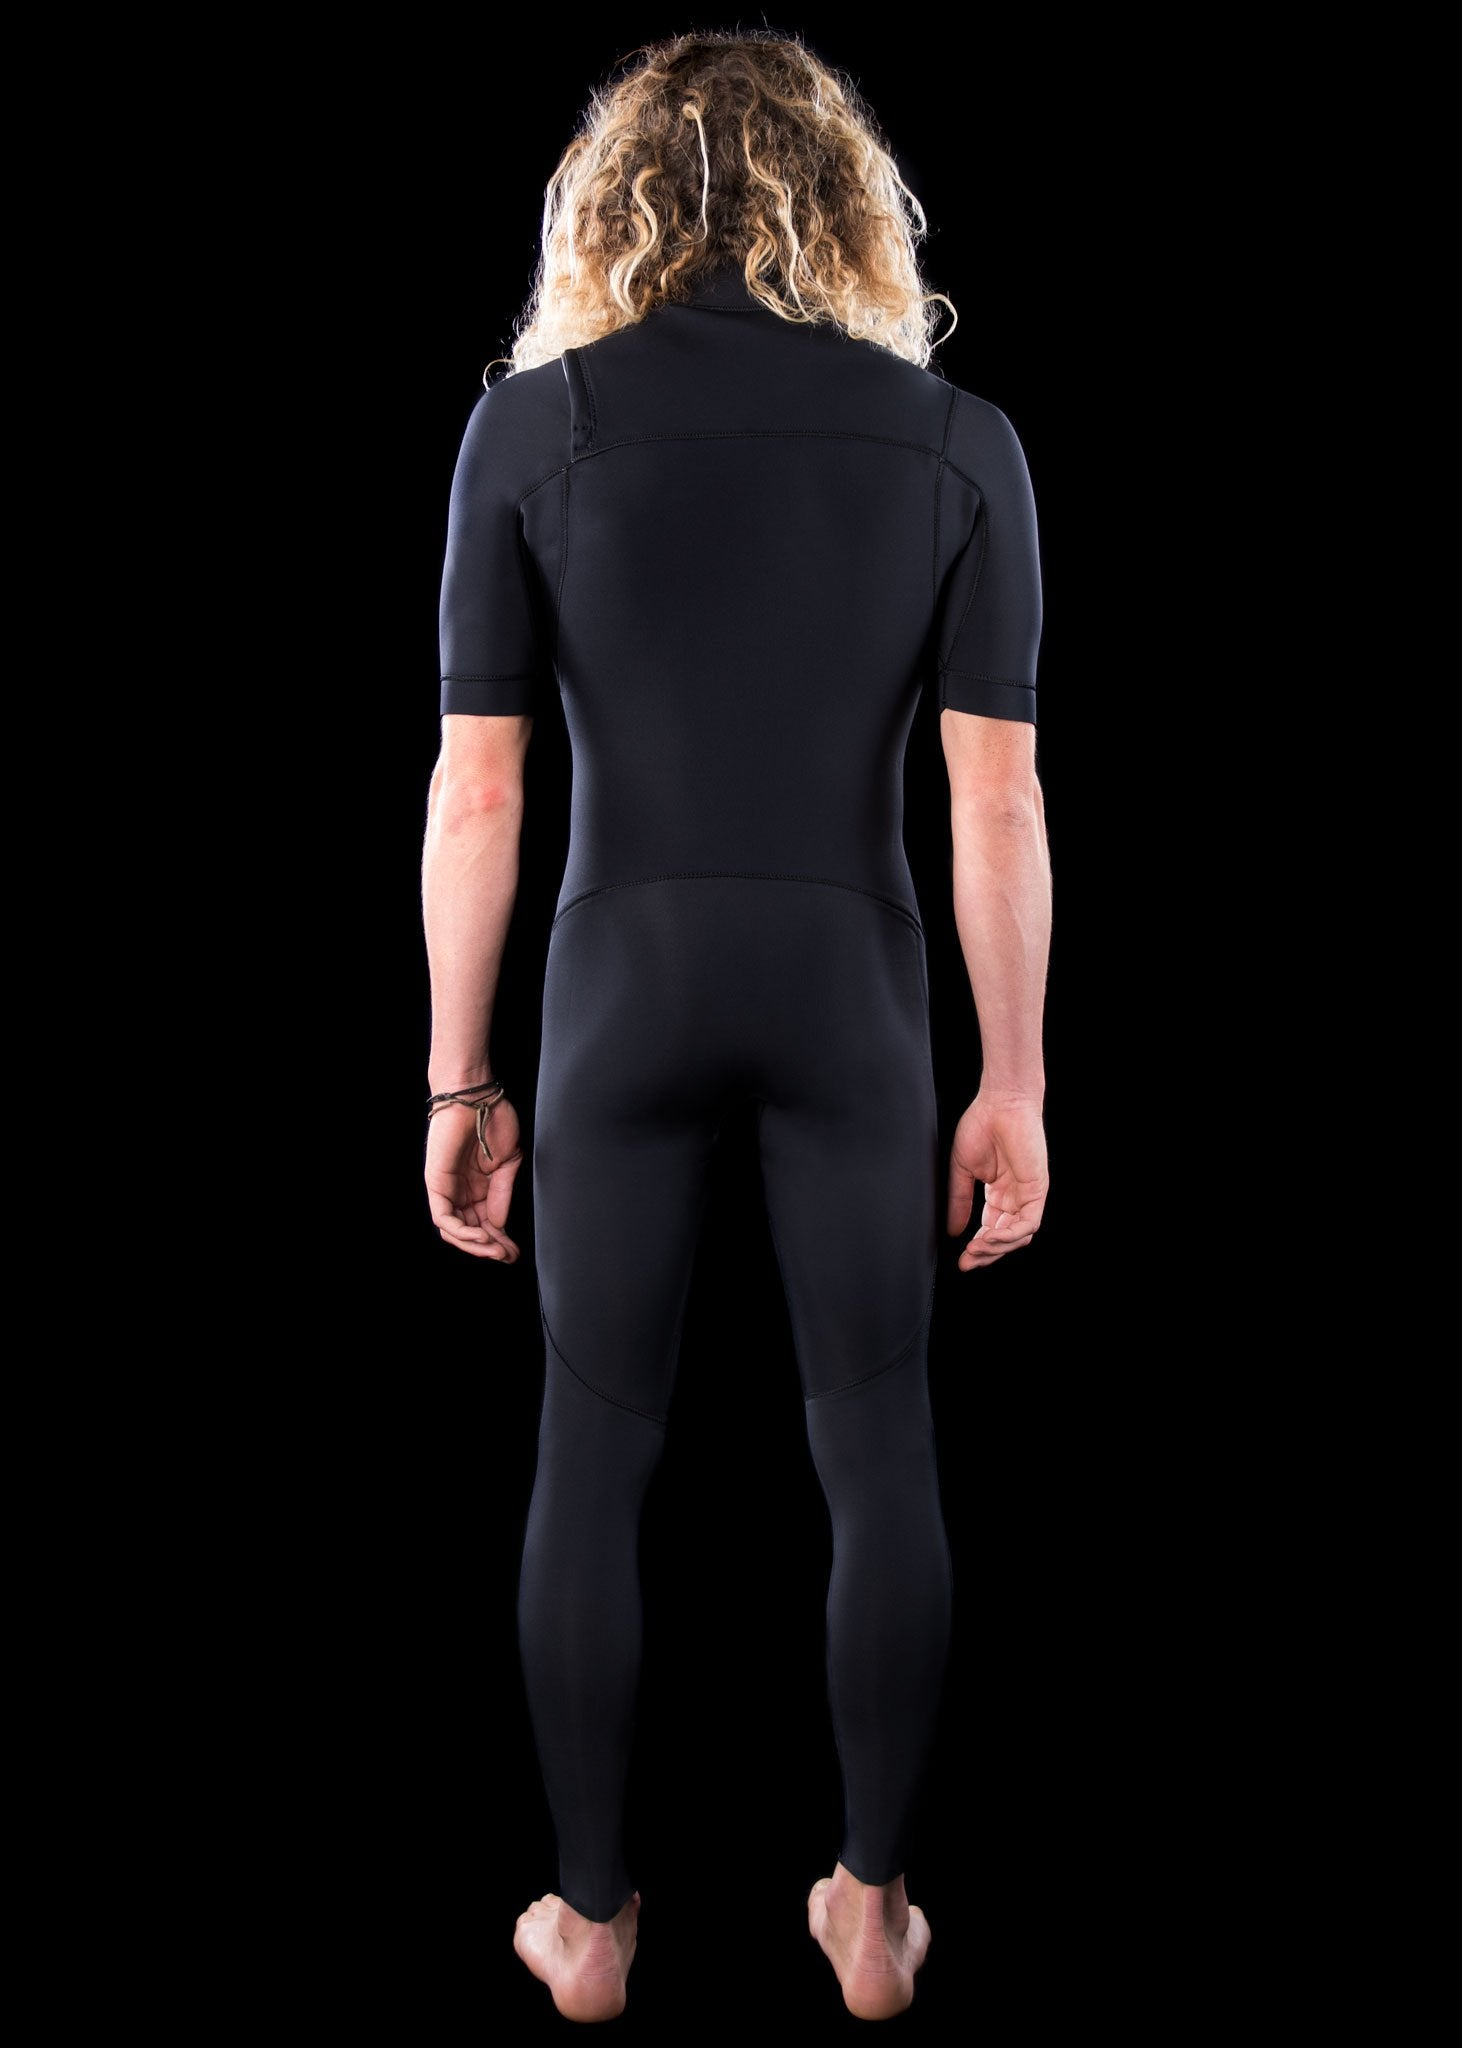 Mens 2.5mm Premium Short Arm Wetsuit